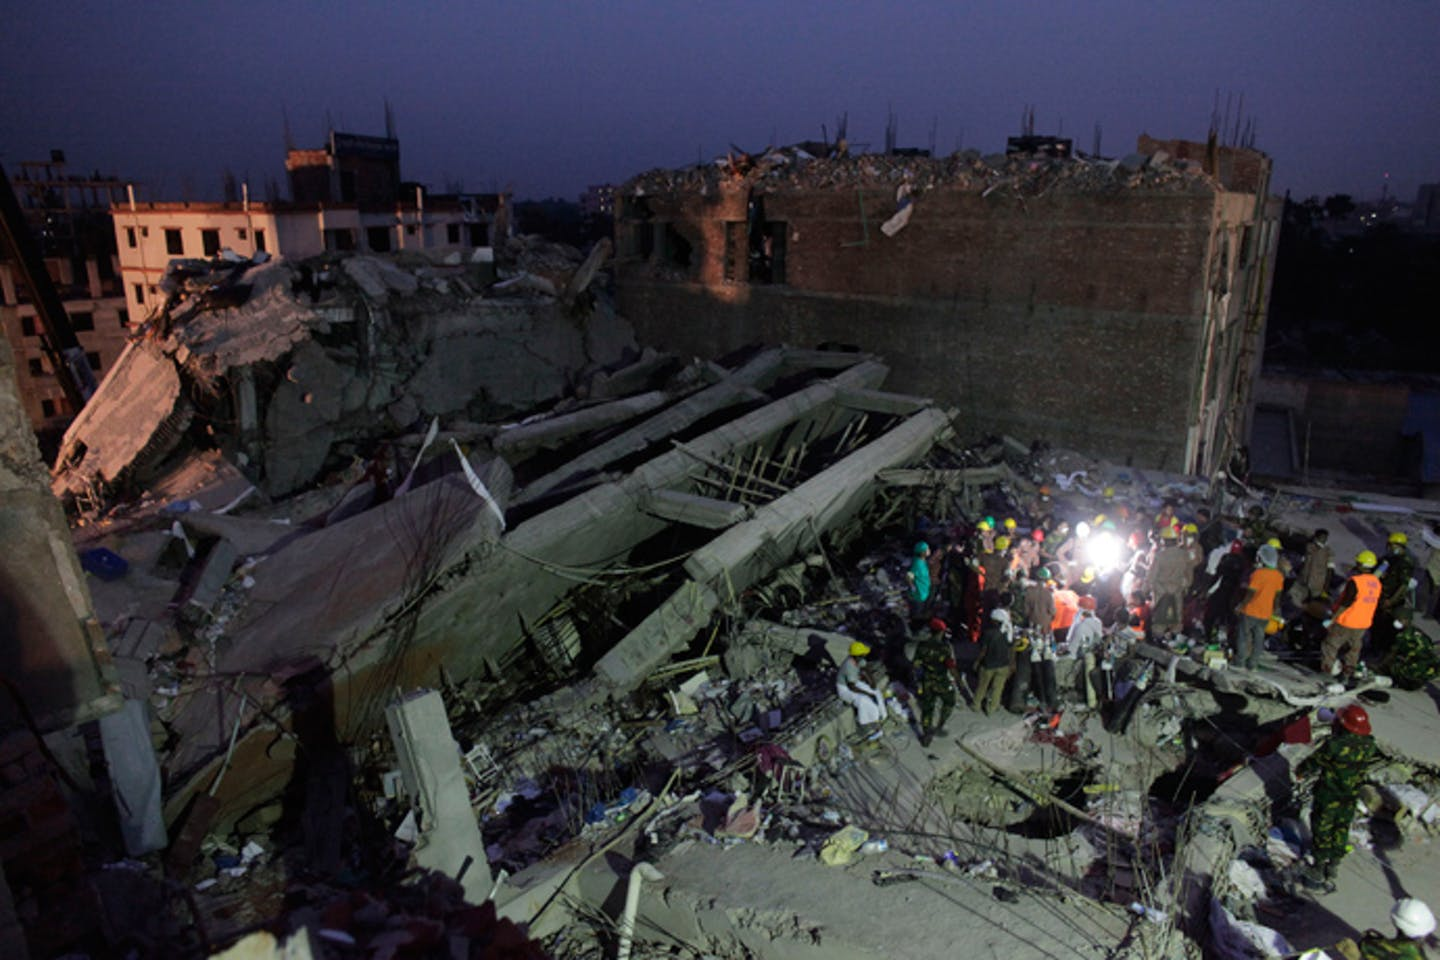 Collapse of Rana Plaza in Bangladesh